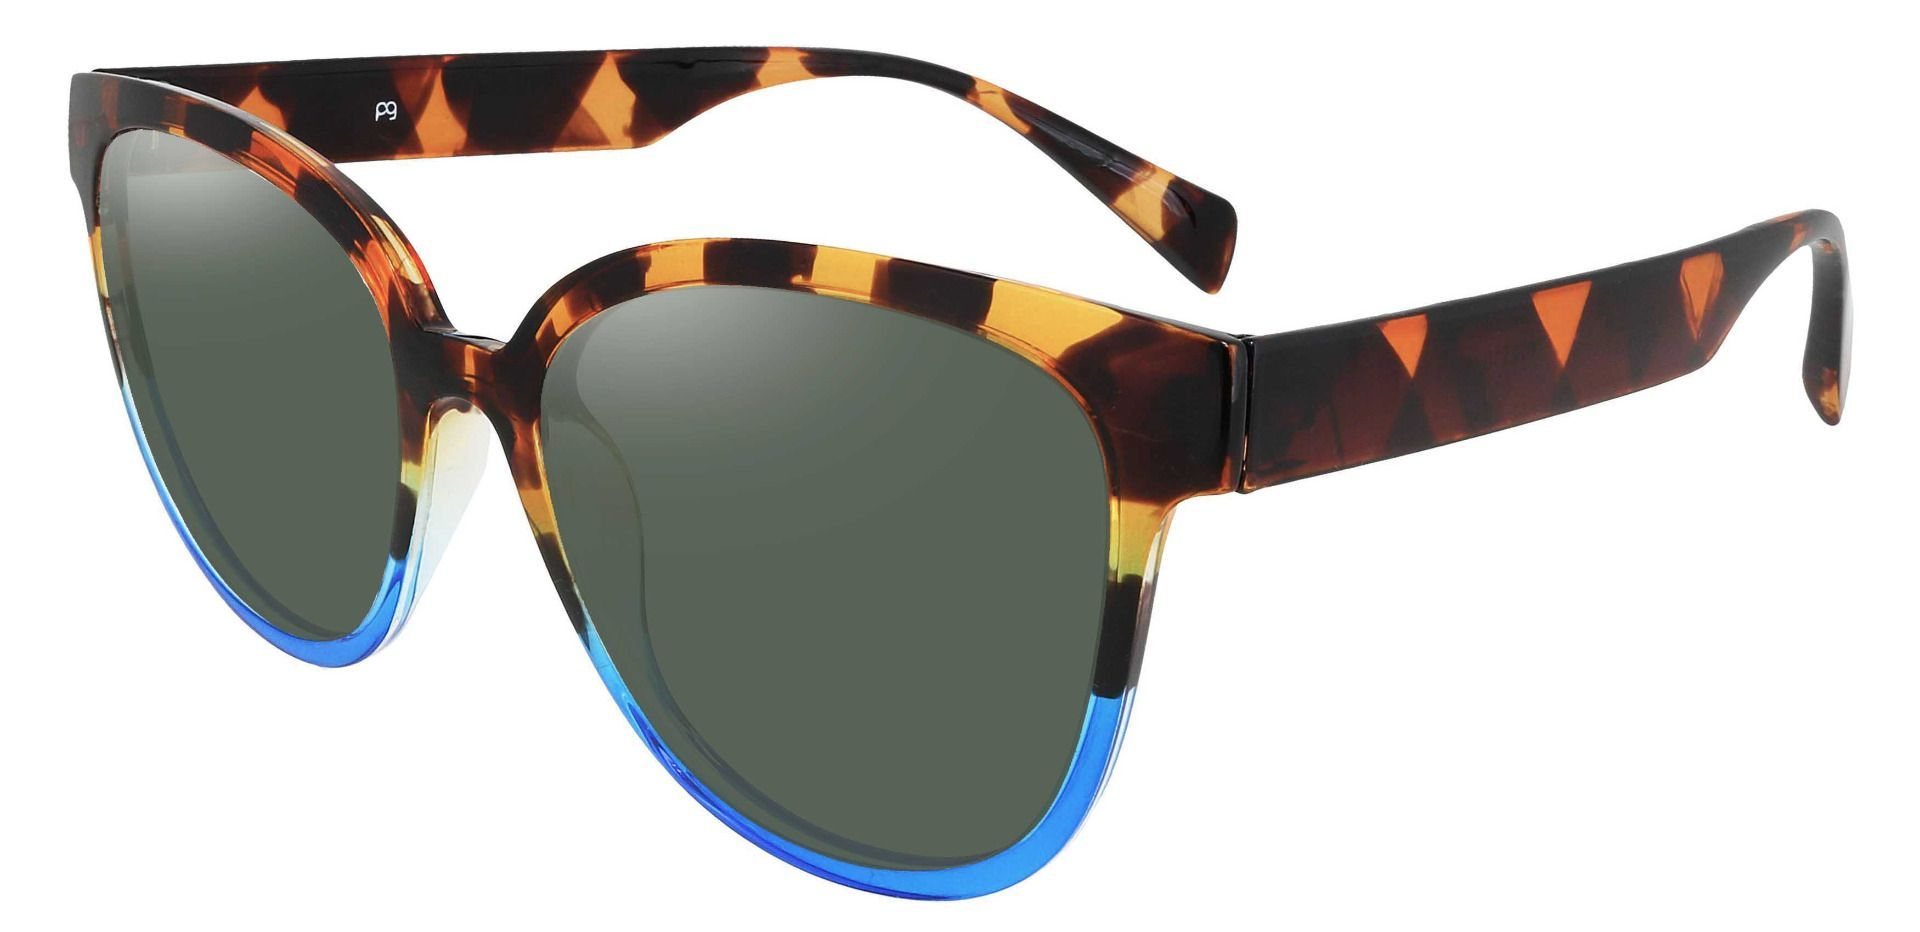 Newport Oval Non-Rx Sunglasses - Tortoise Frame With Green Lenses